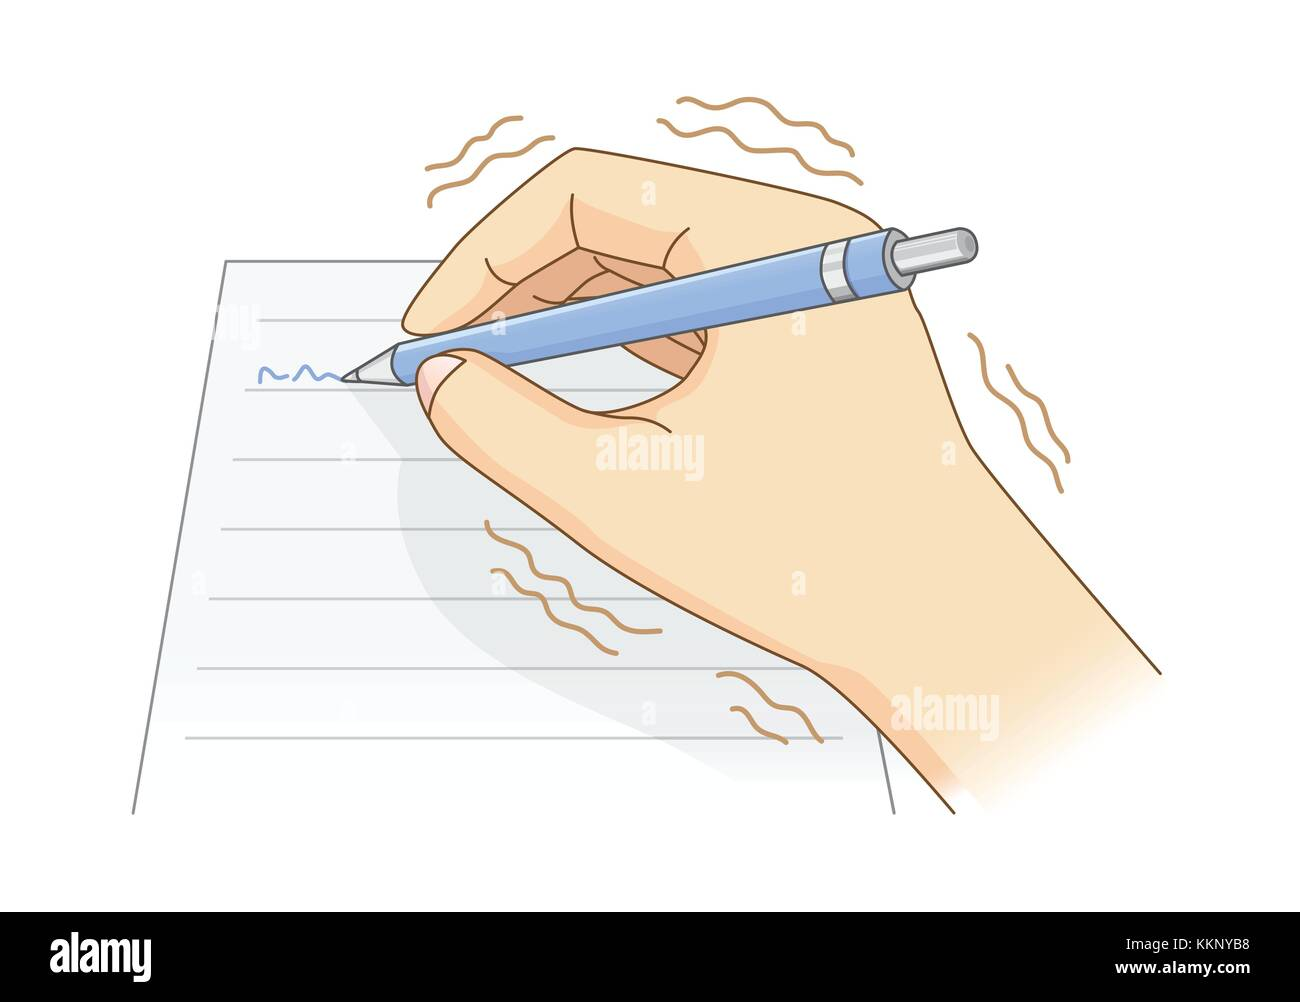 Hand have tremor symptom while writing with a pen. - Stock Image